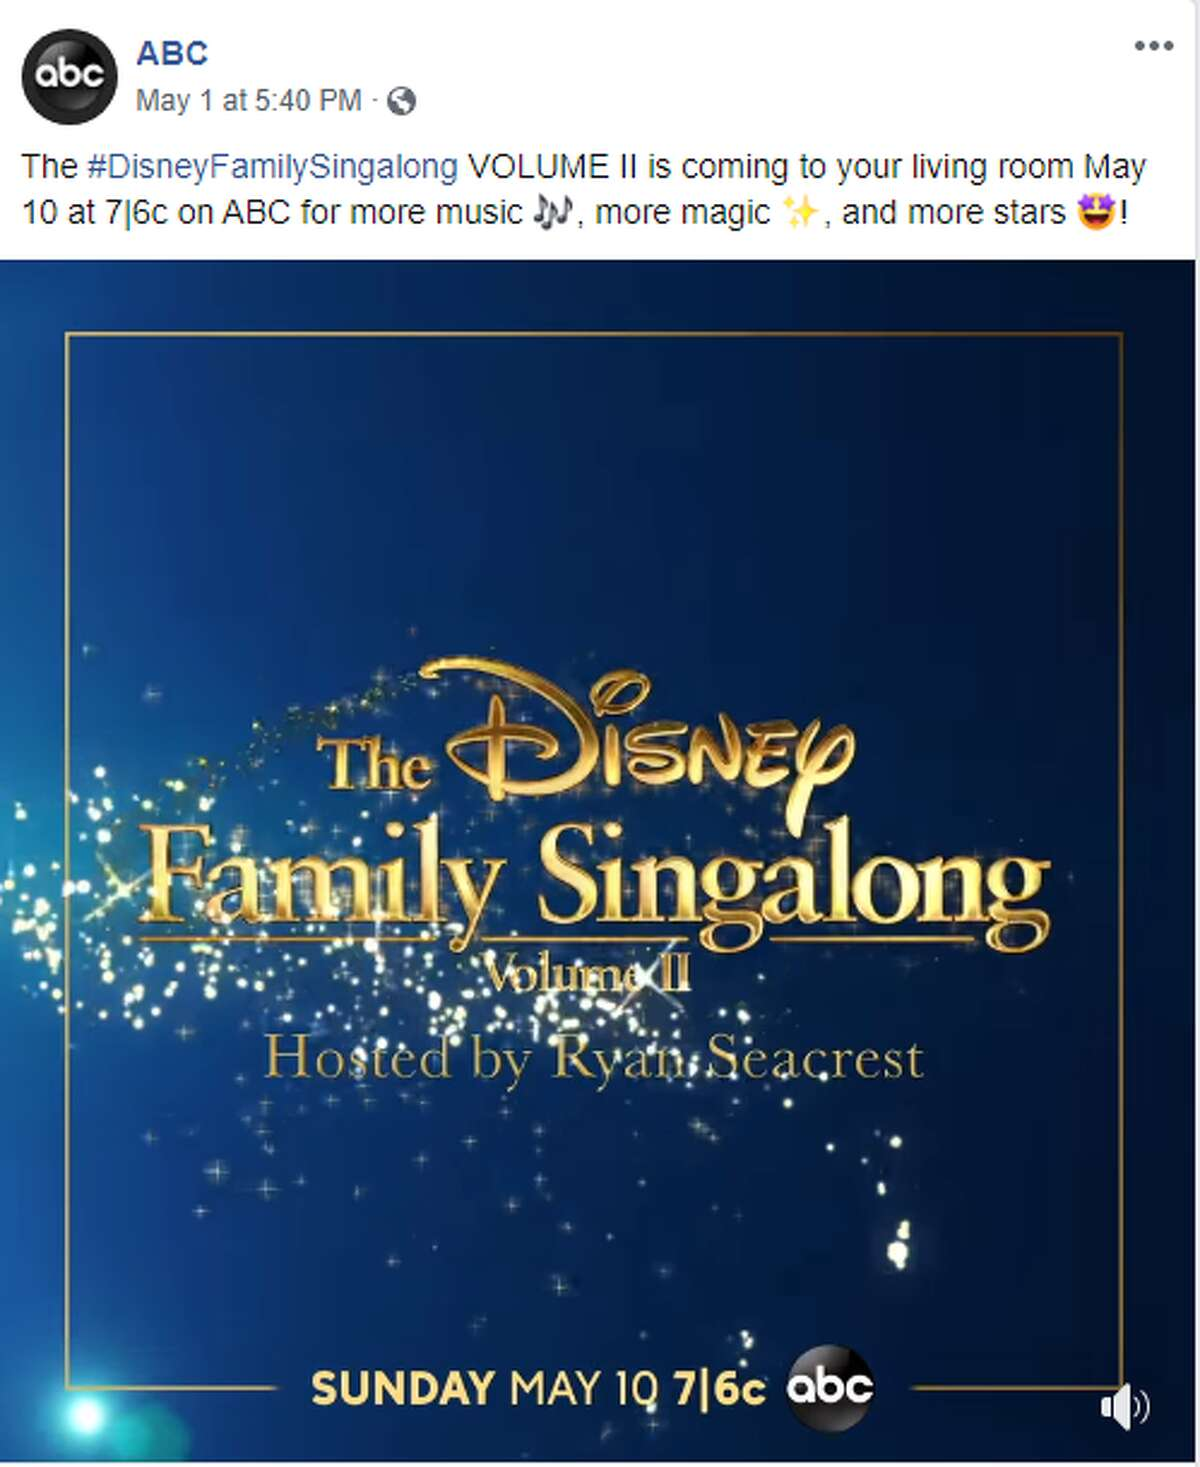 ABC is inviting you to be their guest again for a special Mother's day edition of